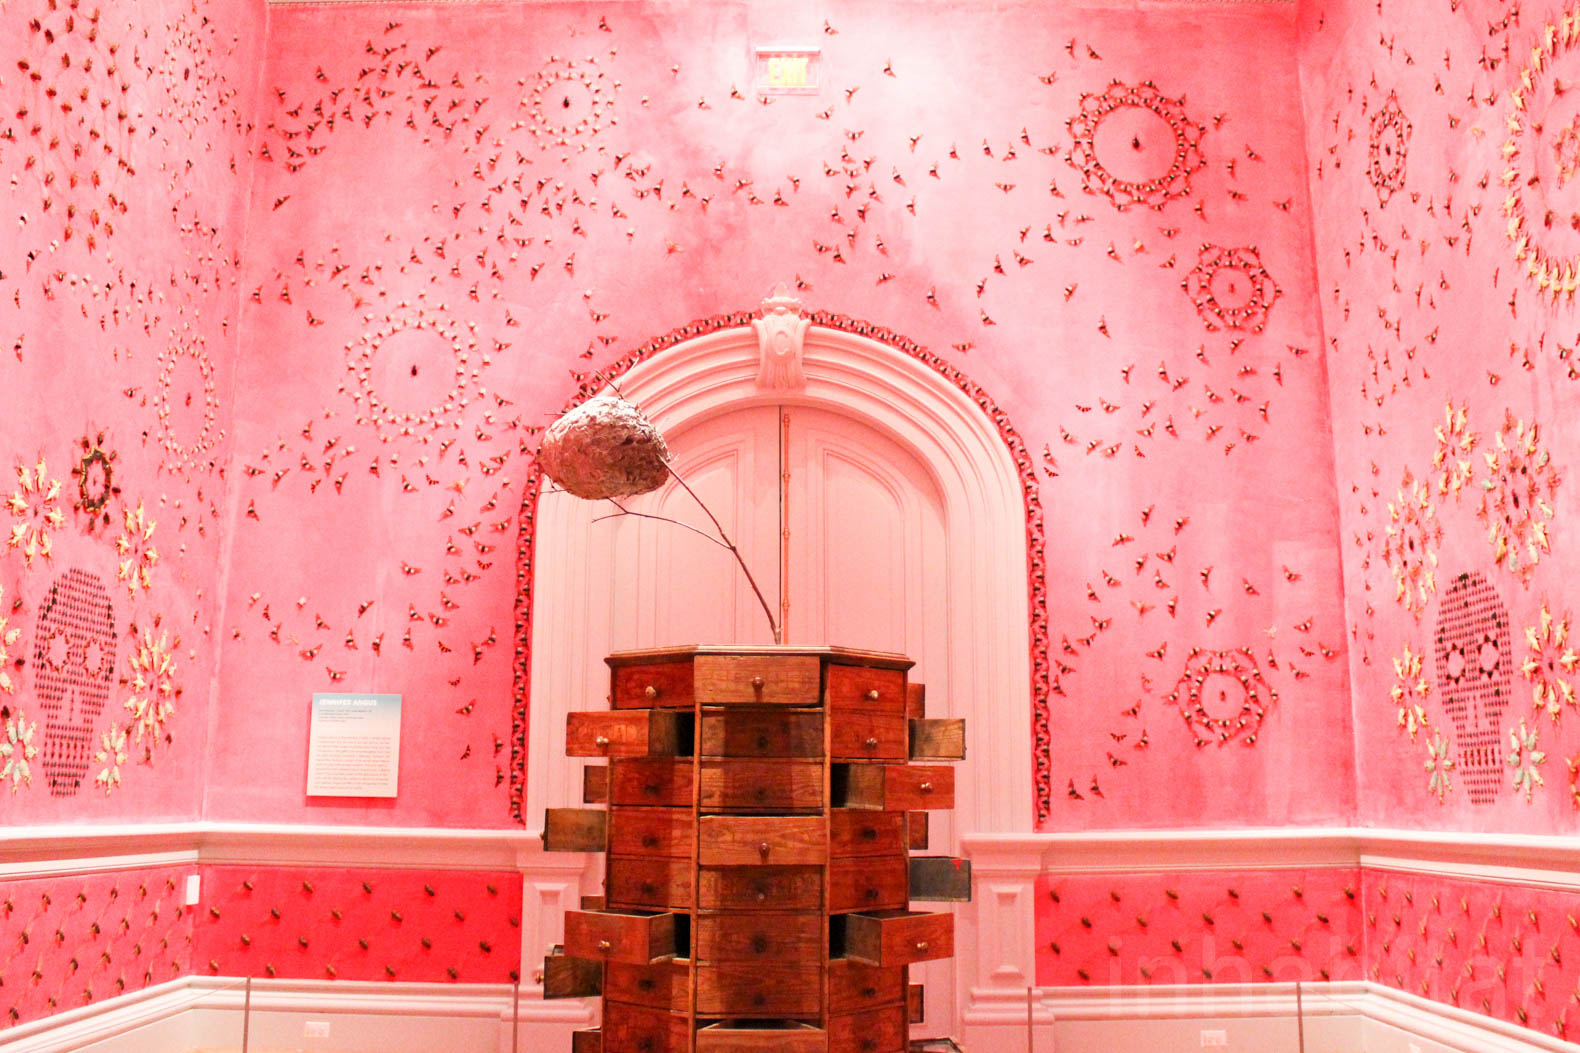 This room is adorned with 5,000 insects arranged in